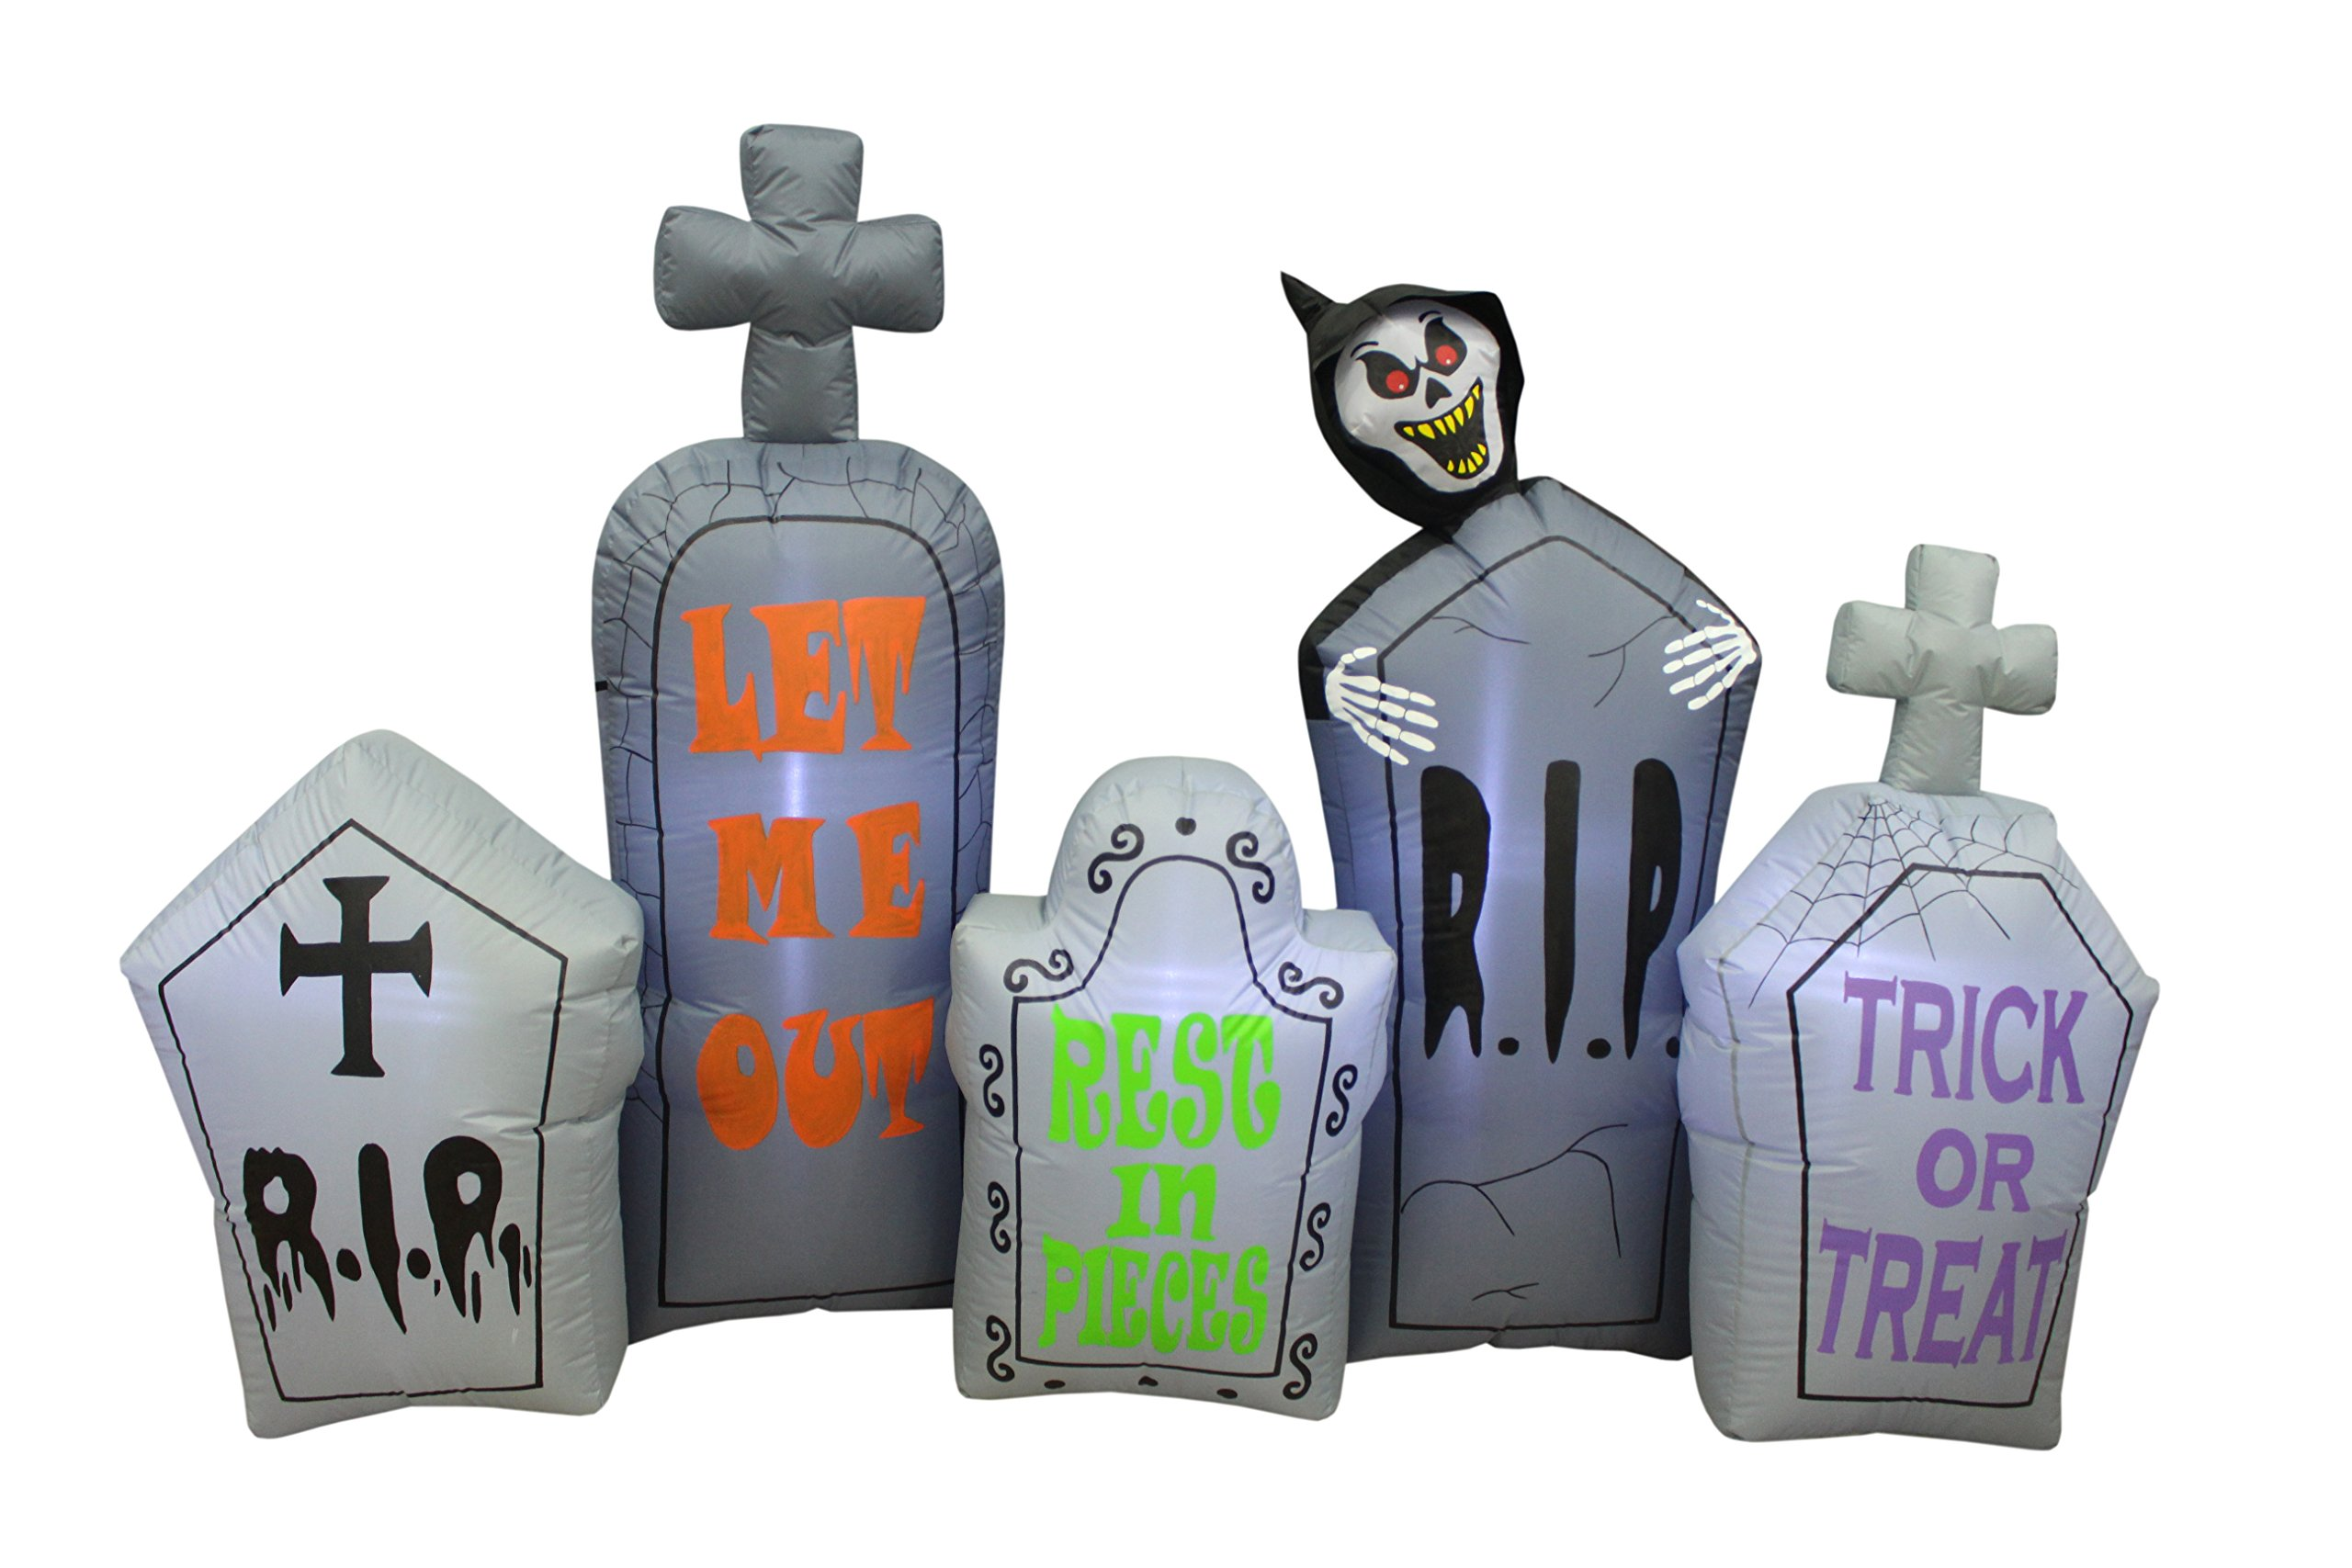 7 Foot Long Halloween Inflatable Tombstones Pathway Scene Haunted House Prop Grim Reaper LED Lights Decor Outdoor Indoor Holiday Decorations, Blow up Lighted Yard Decor, Lawn Inflatable Home Family